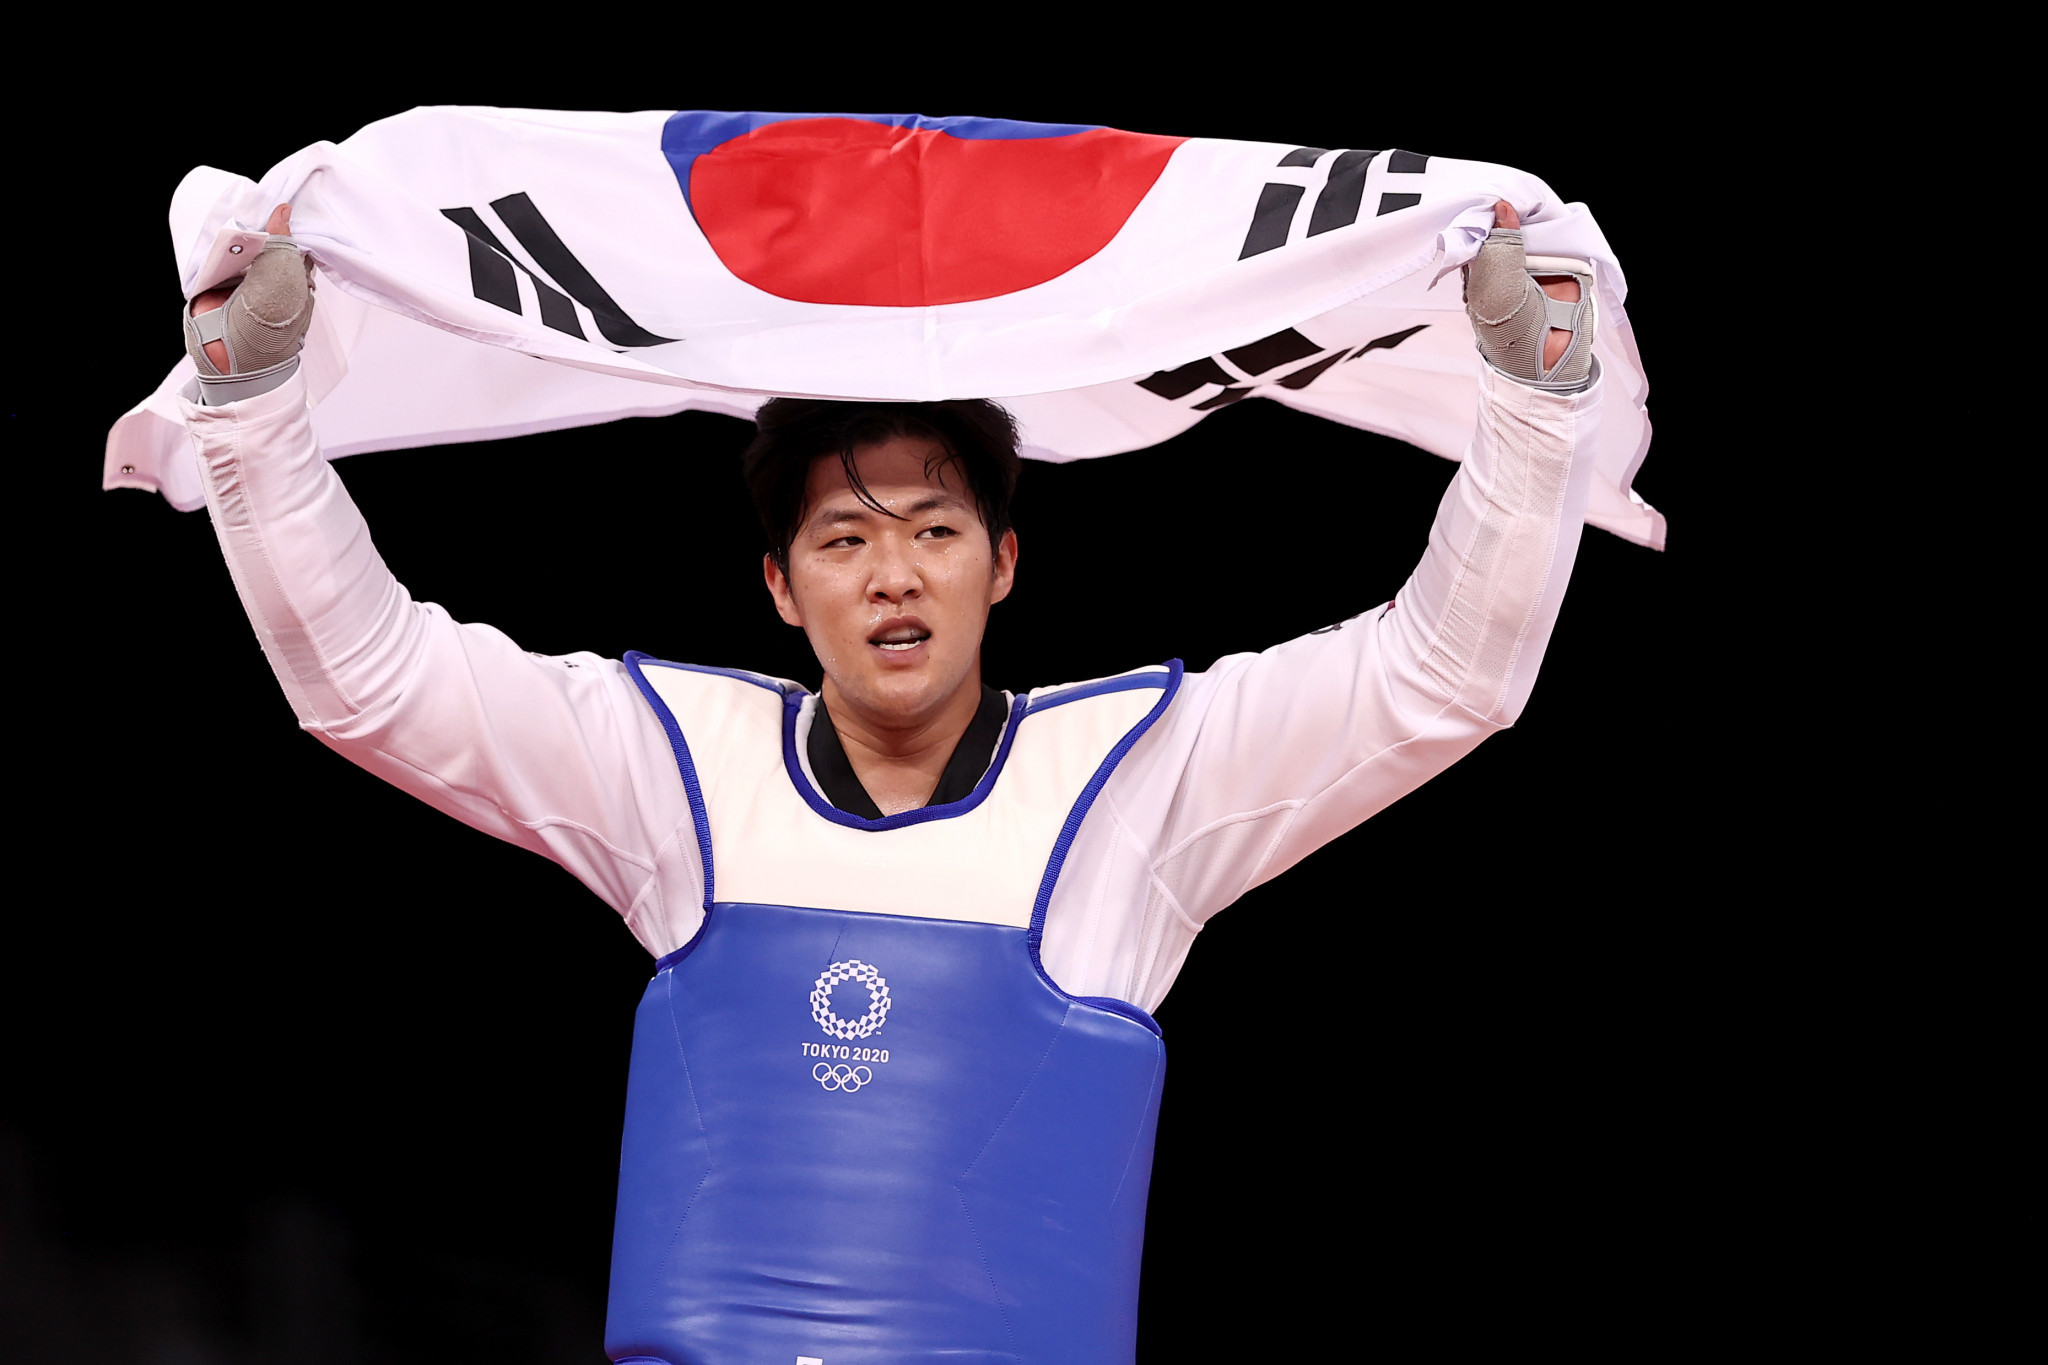 Cancer survivor hopes Tokyo 2020 taekwondo performance can inspire other sufferers